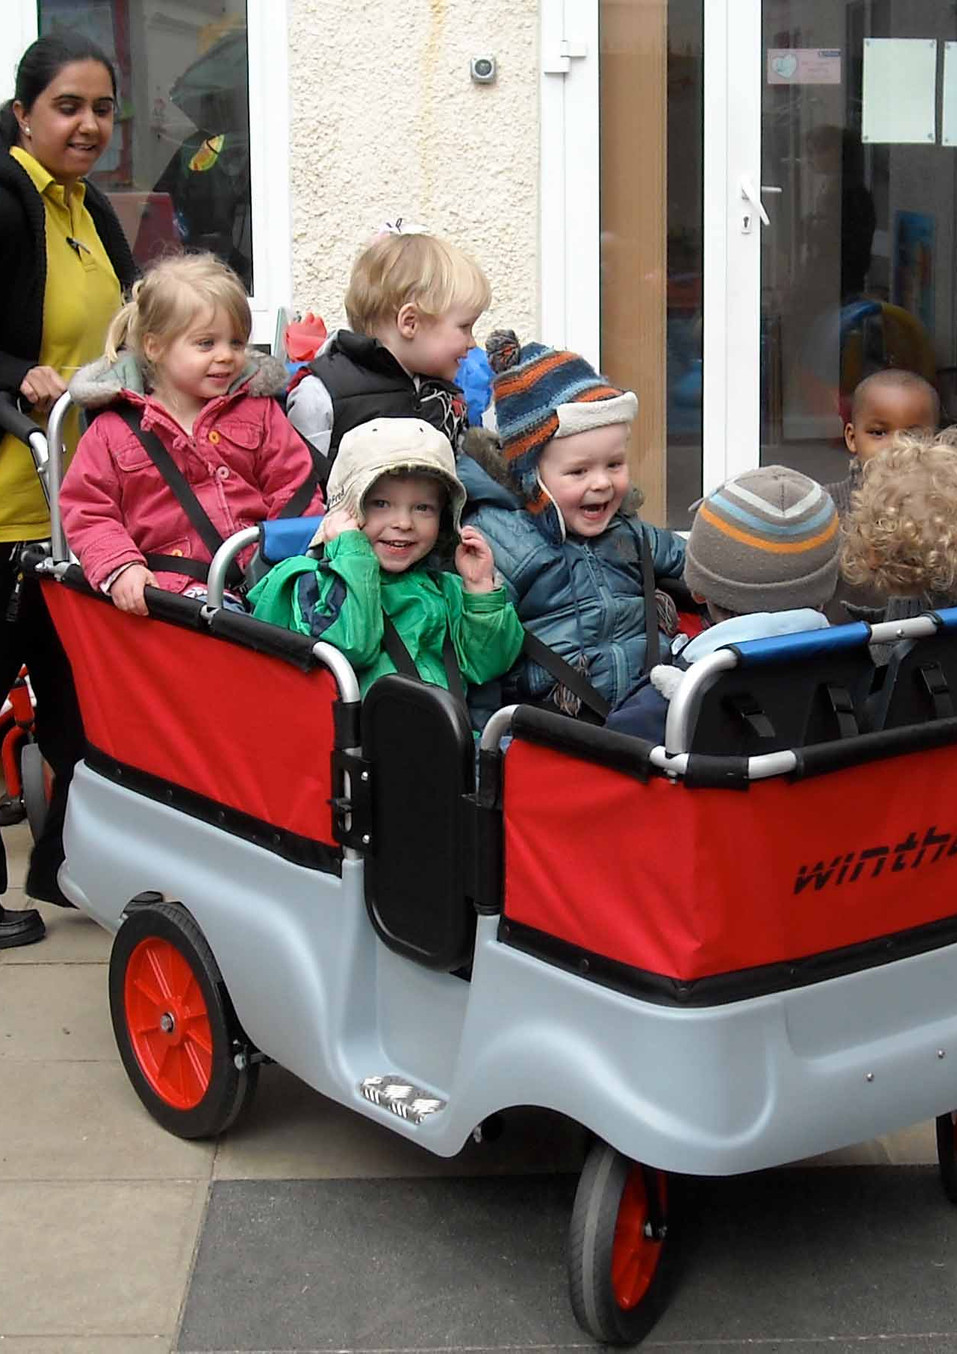 childcare full of adventures and outings in the kiddy bus